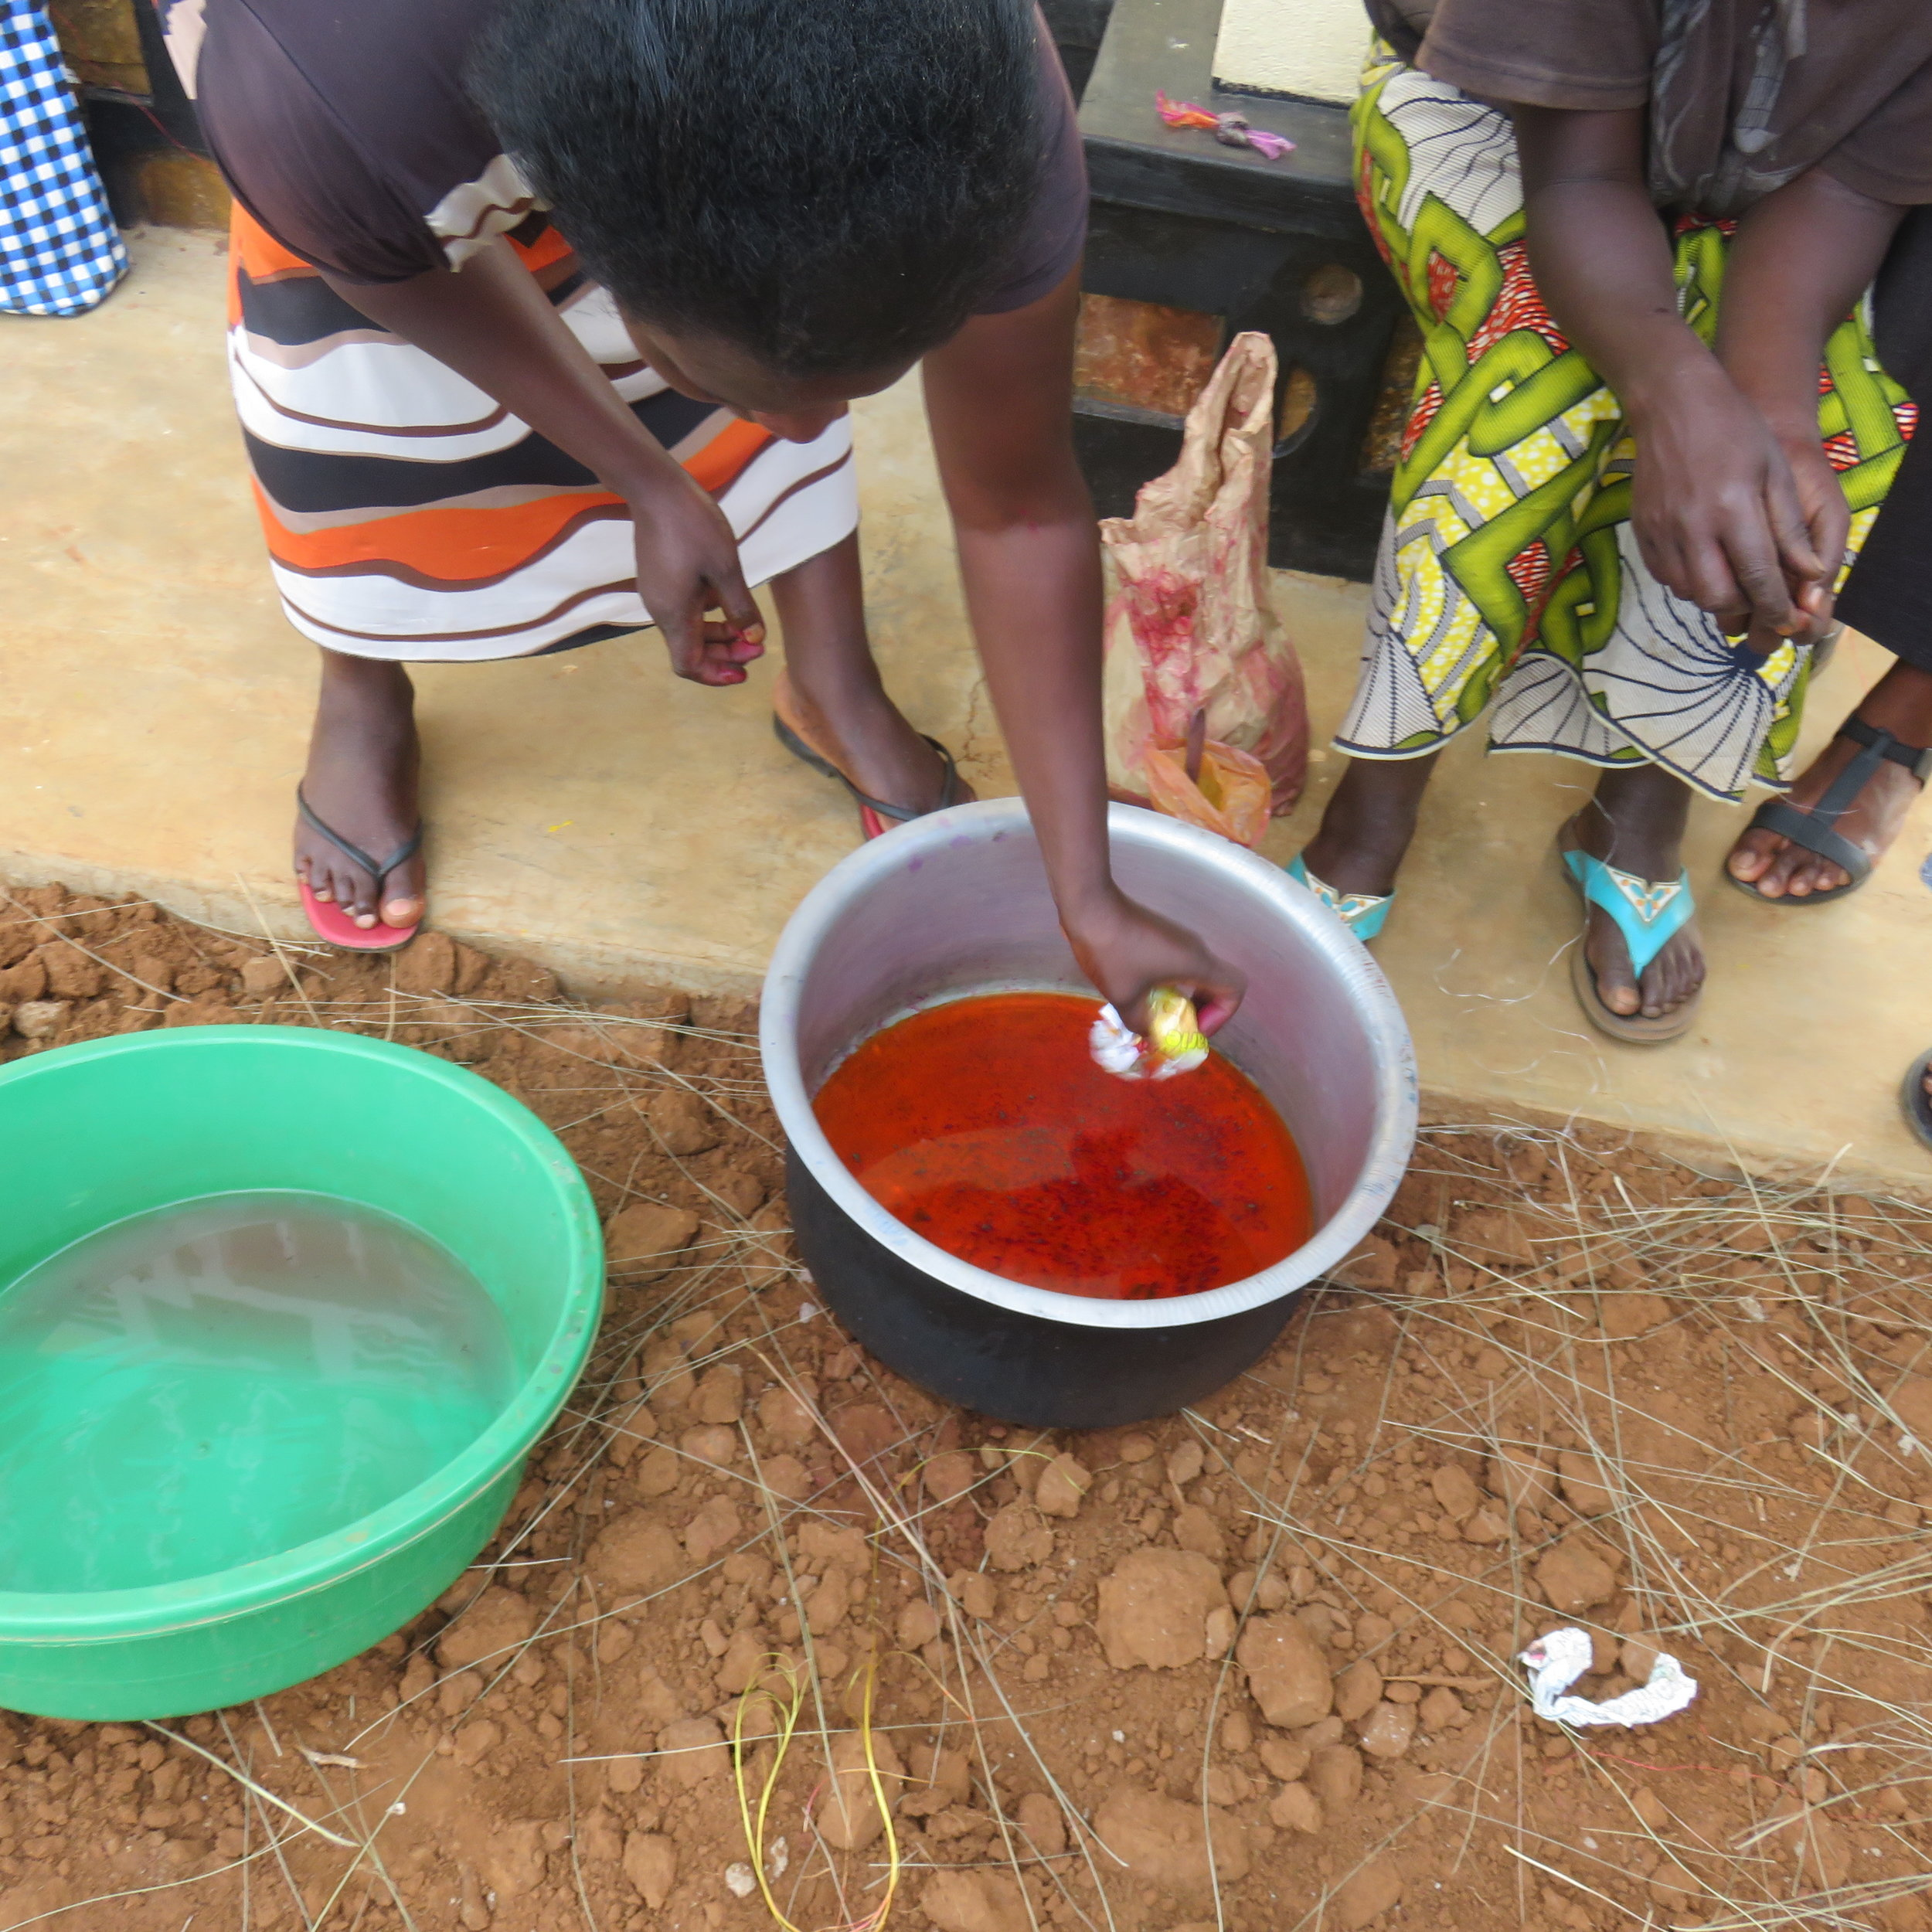 Figure 1: Mixing the orange flour with water.